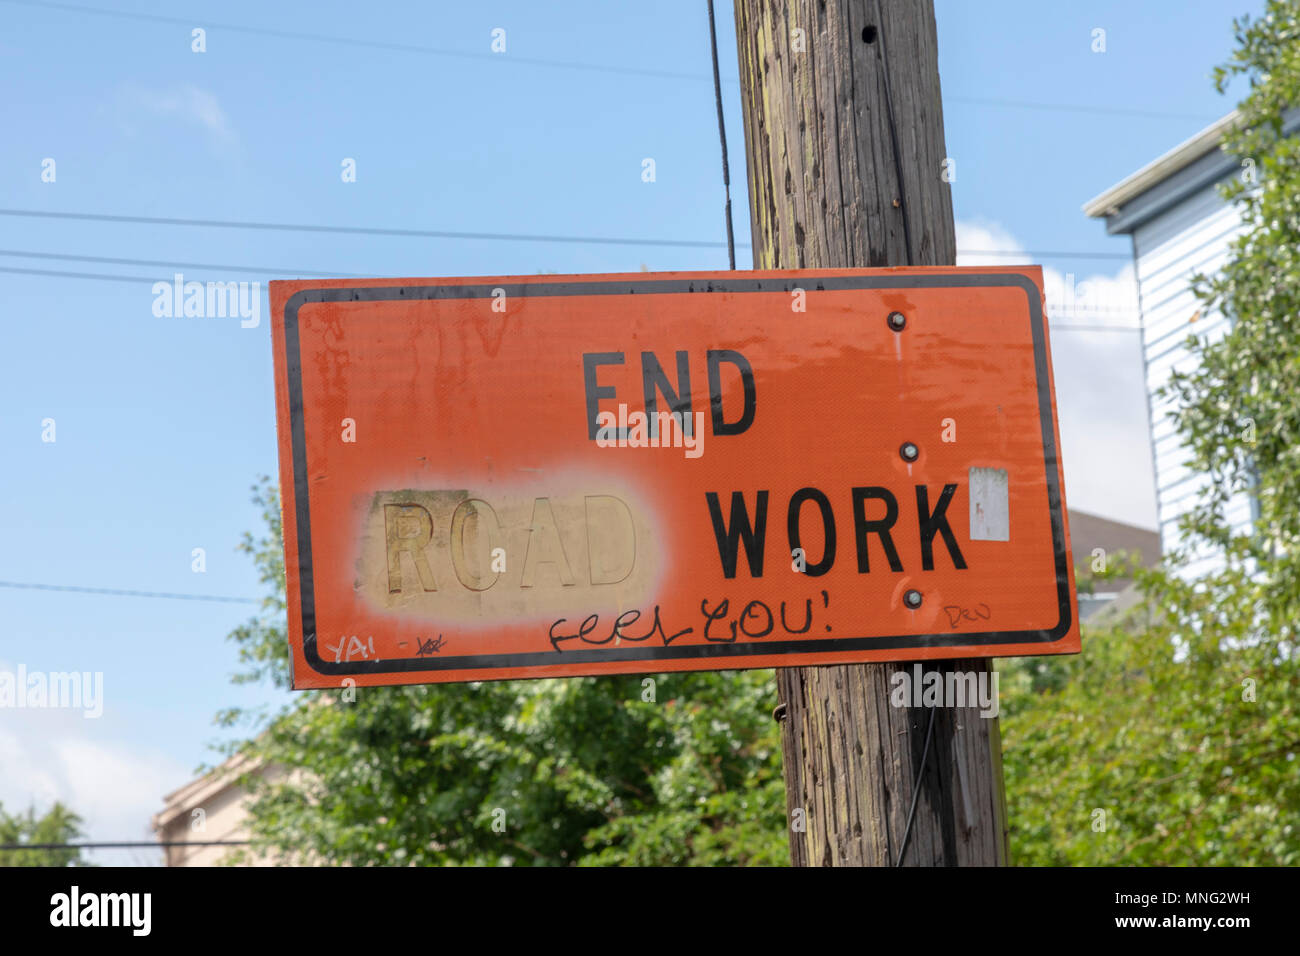 New Orleans, Louisiana - An 'End Road Work' road sign altered to read 'End Work.' - Stock Image